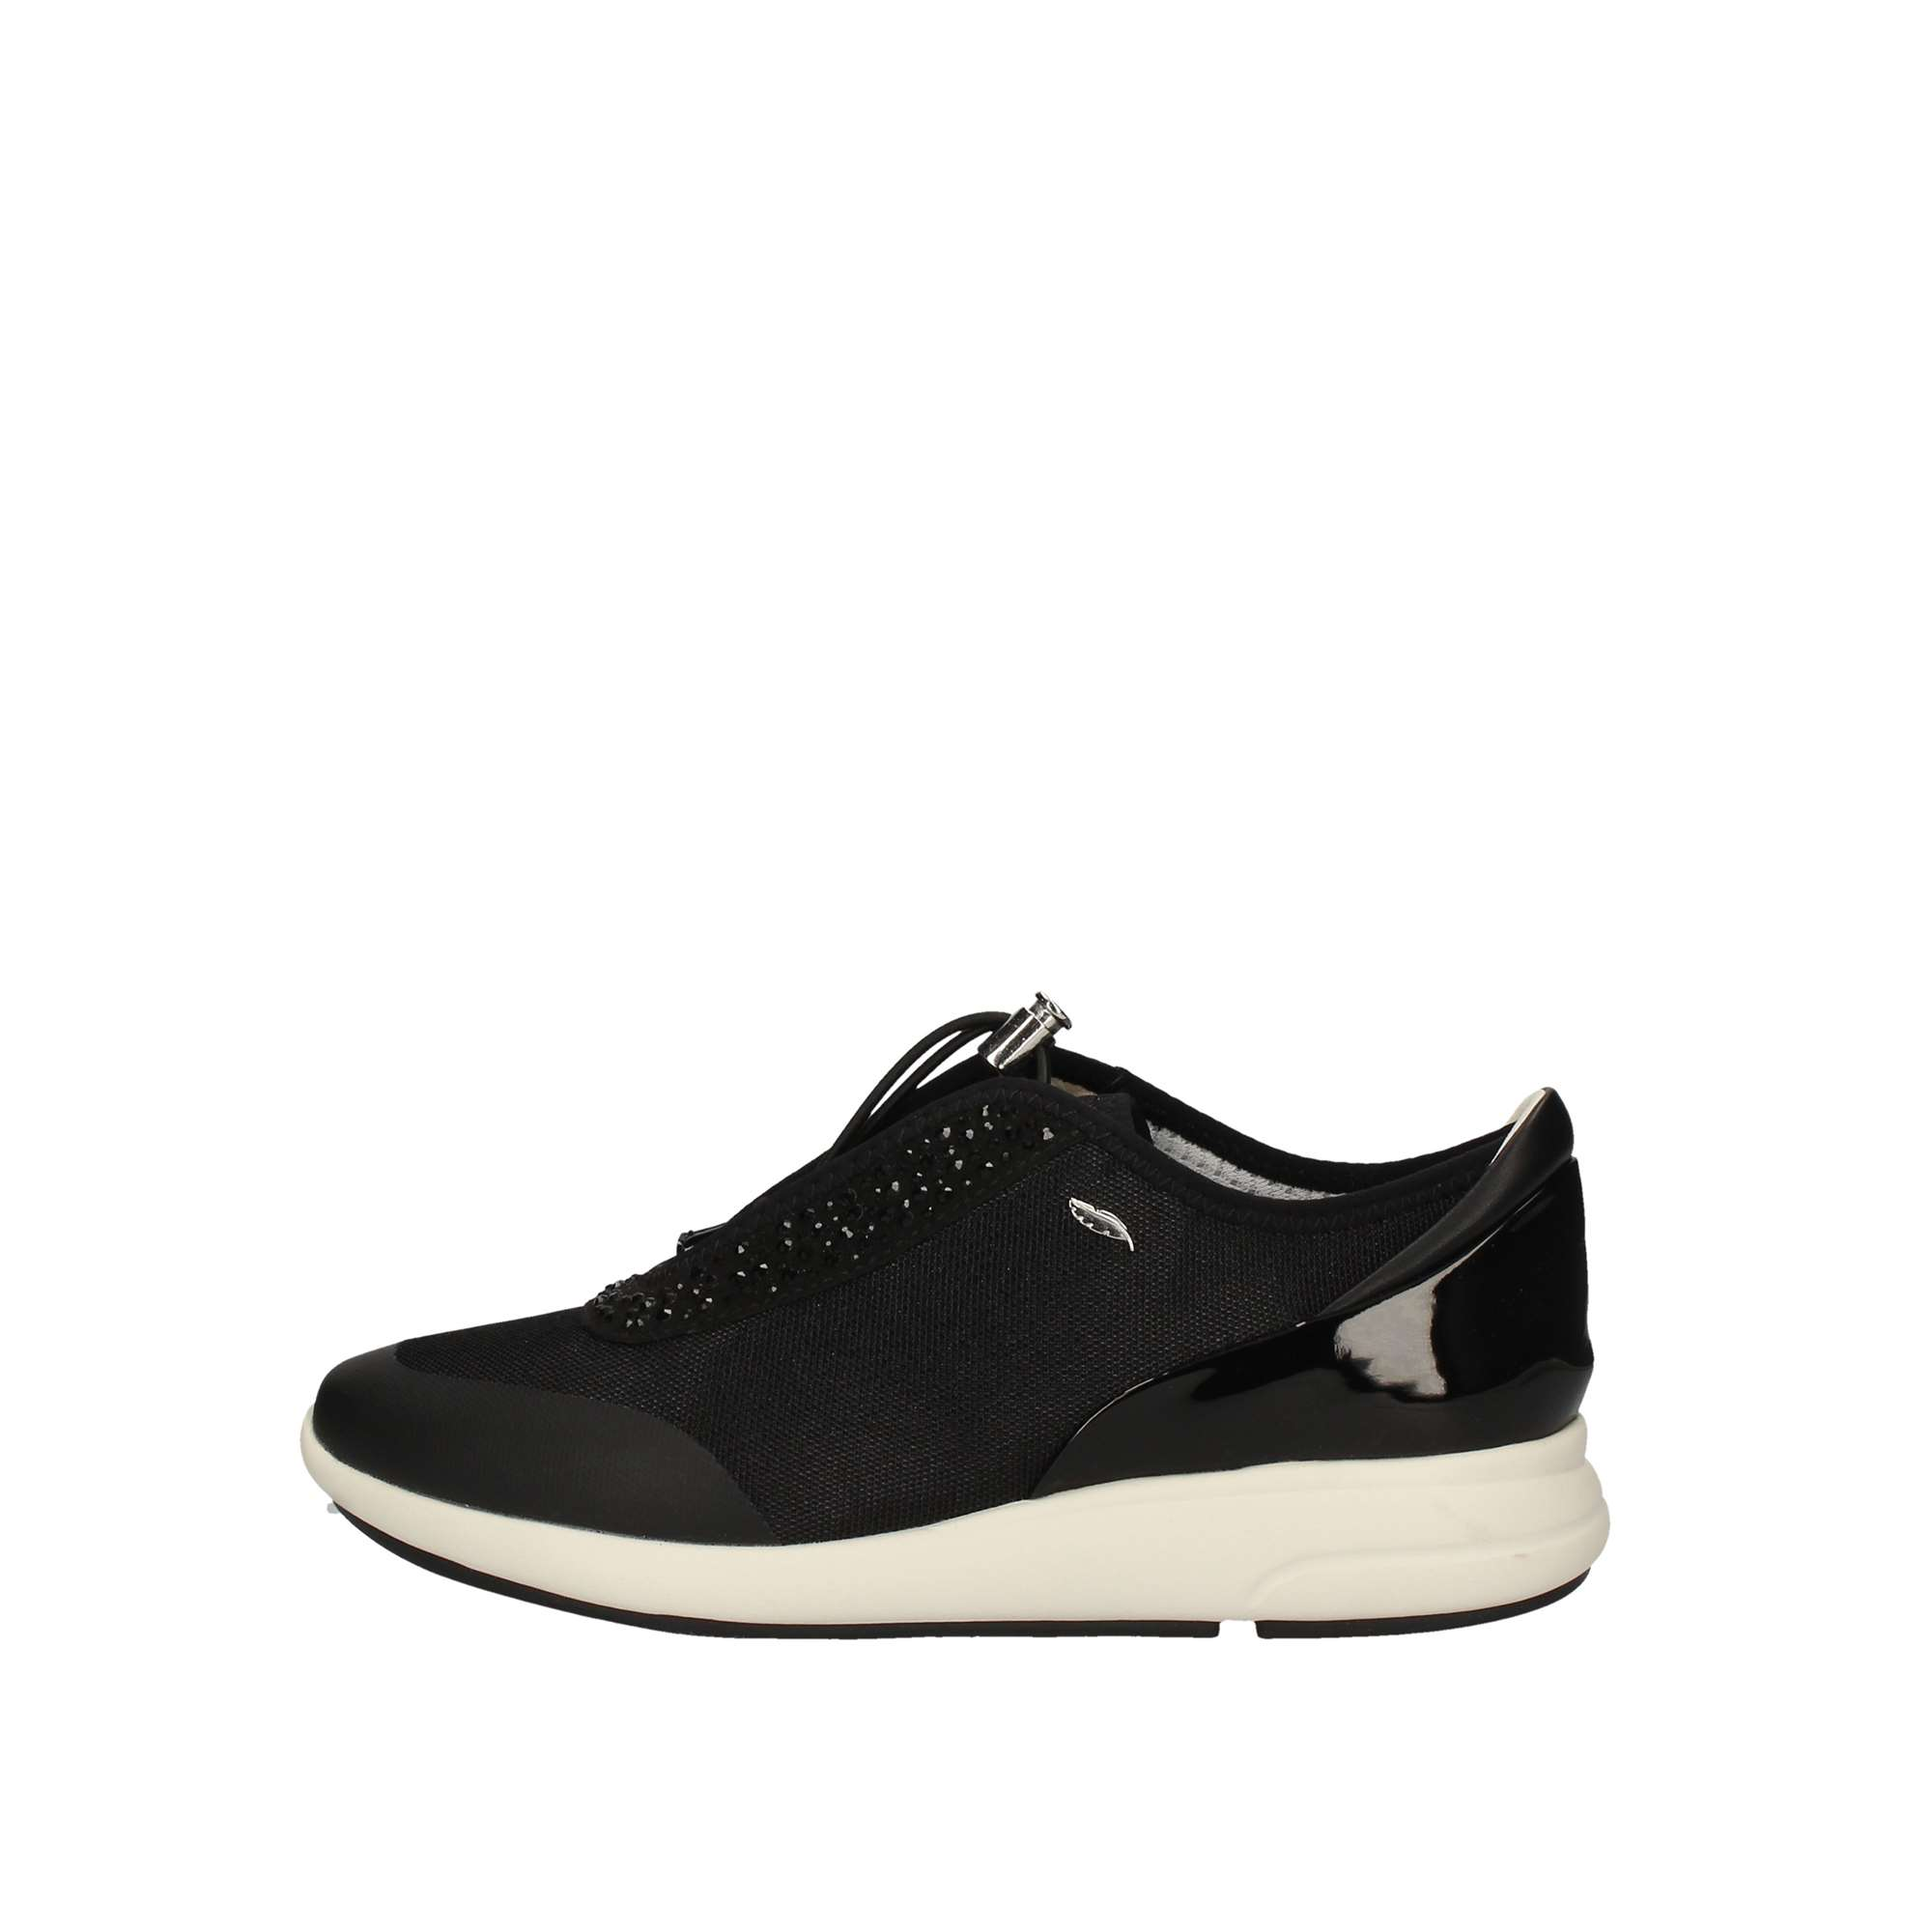 Alta qualit SNEAKERS Donna GEOX D621CE 01402 Primavera Estate -  mainstreetblytheville.org a96a96fb30f